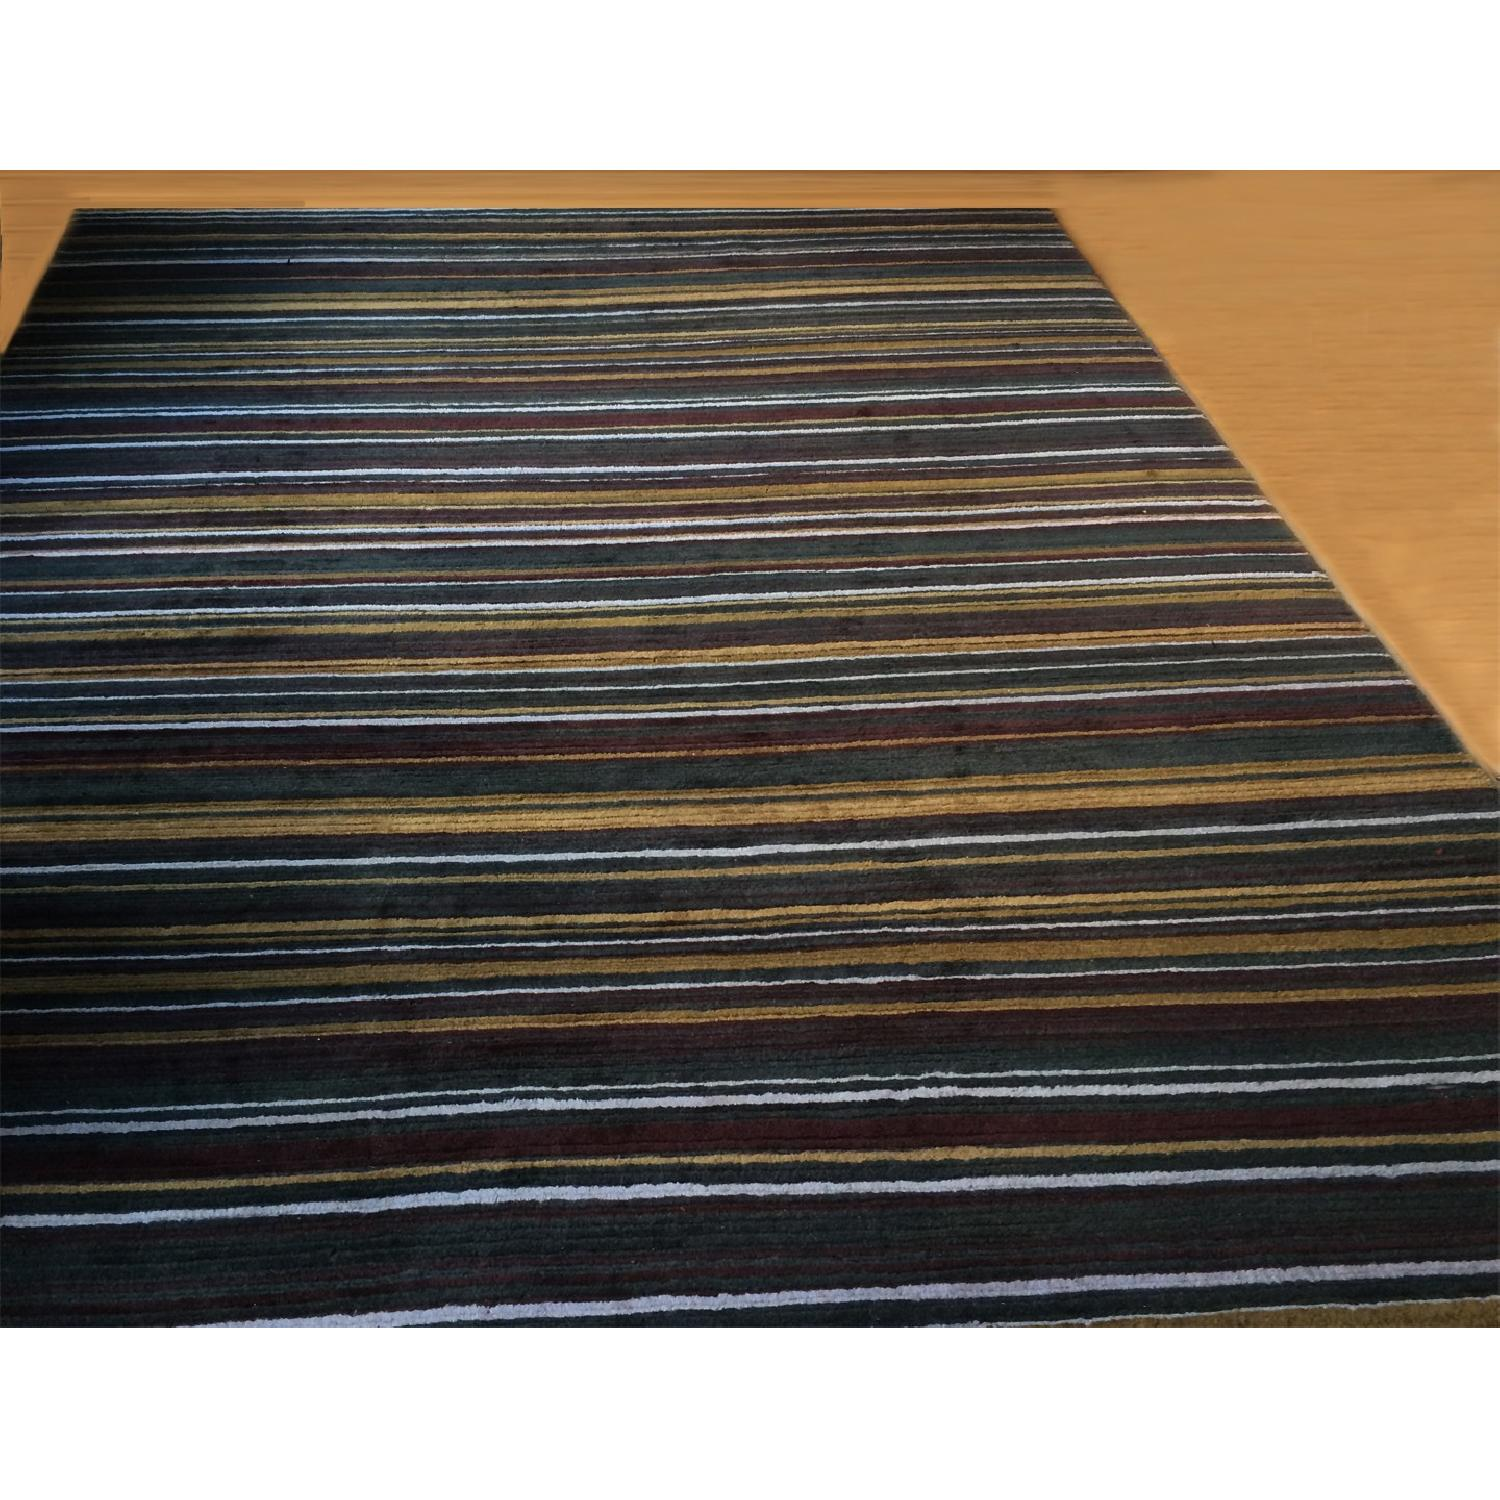 Crate & Barrel Hand Knotted Wool Rug - image-1